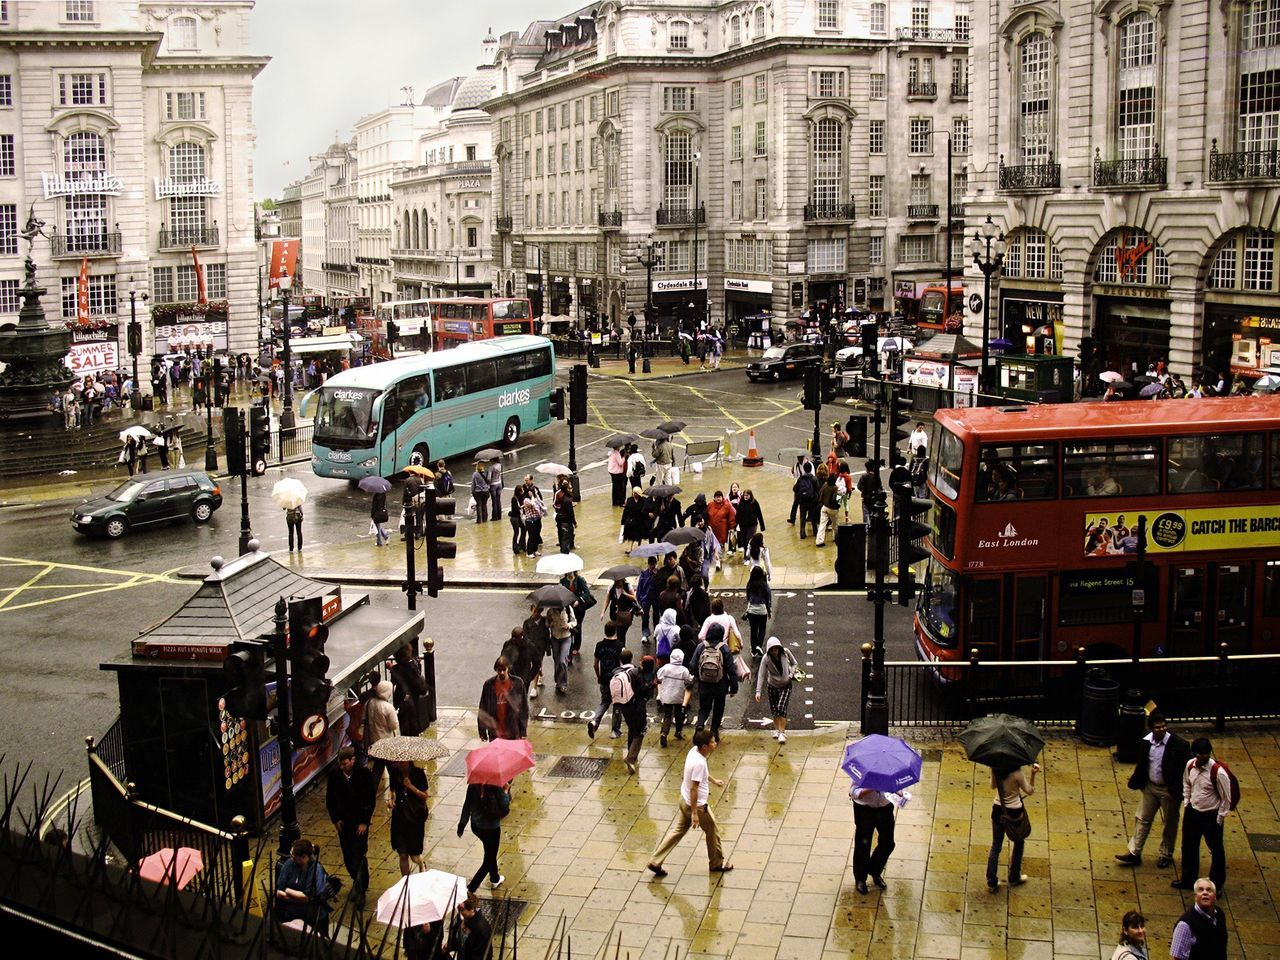 :// London - Piccadilly Circus Hello World London TheWeekOnEyeEM Streetphotography EyeEm Best Shots Pastel Power Architecture_collection Architecture Urbanphotography From My Point Of View Vintage Style Traffic Rainy Days Rain People Life Artist EyeEm Gallery Check This Out Urban Everything In Its Place Photography In Motion My Favorite Photo London Lifestyle Embrace Urban Life Flying High